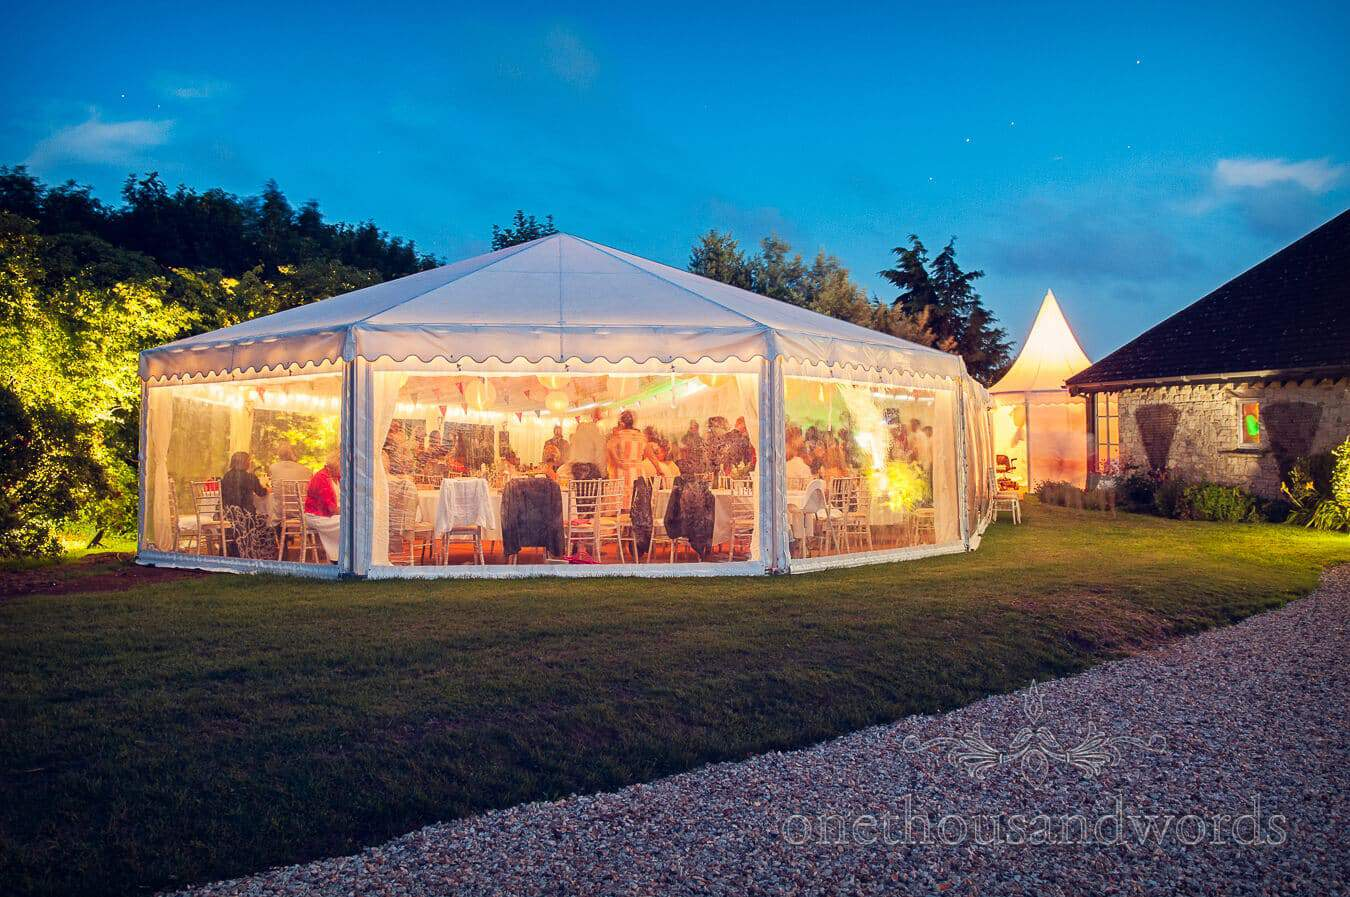 Wedding marquee glowing at night at Dorset Home Wedding